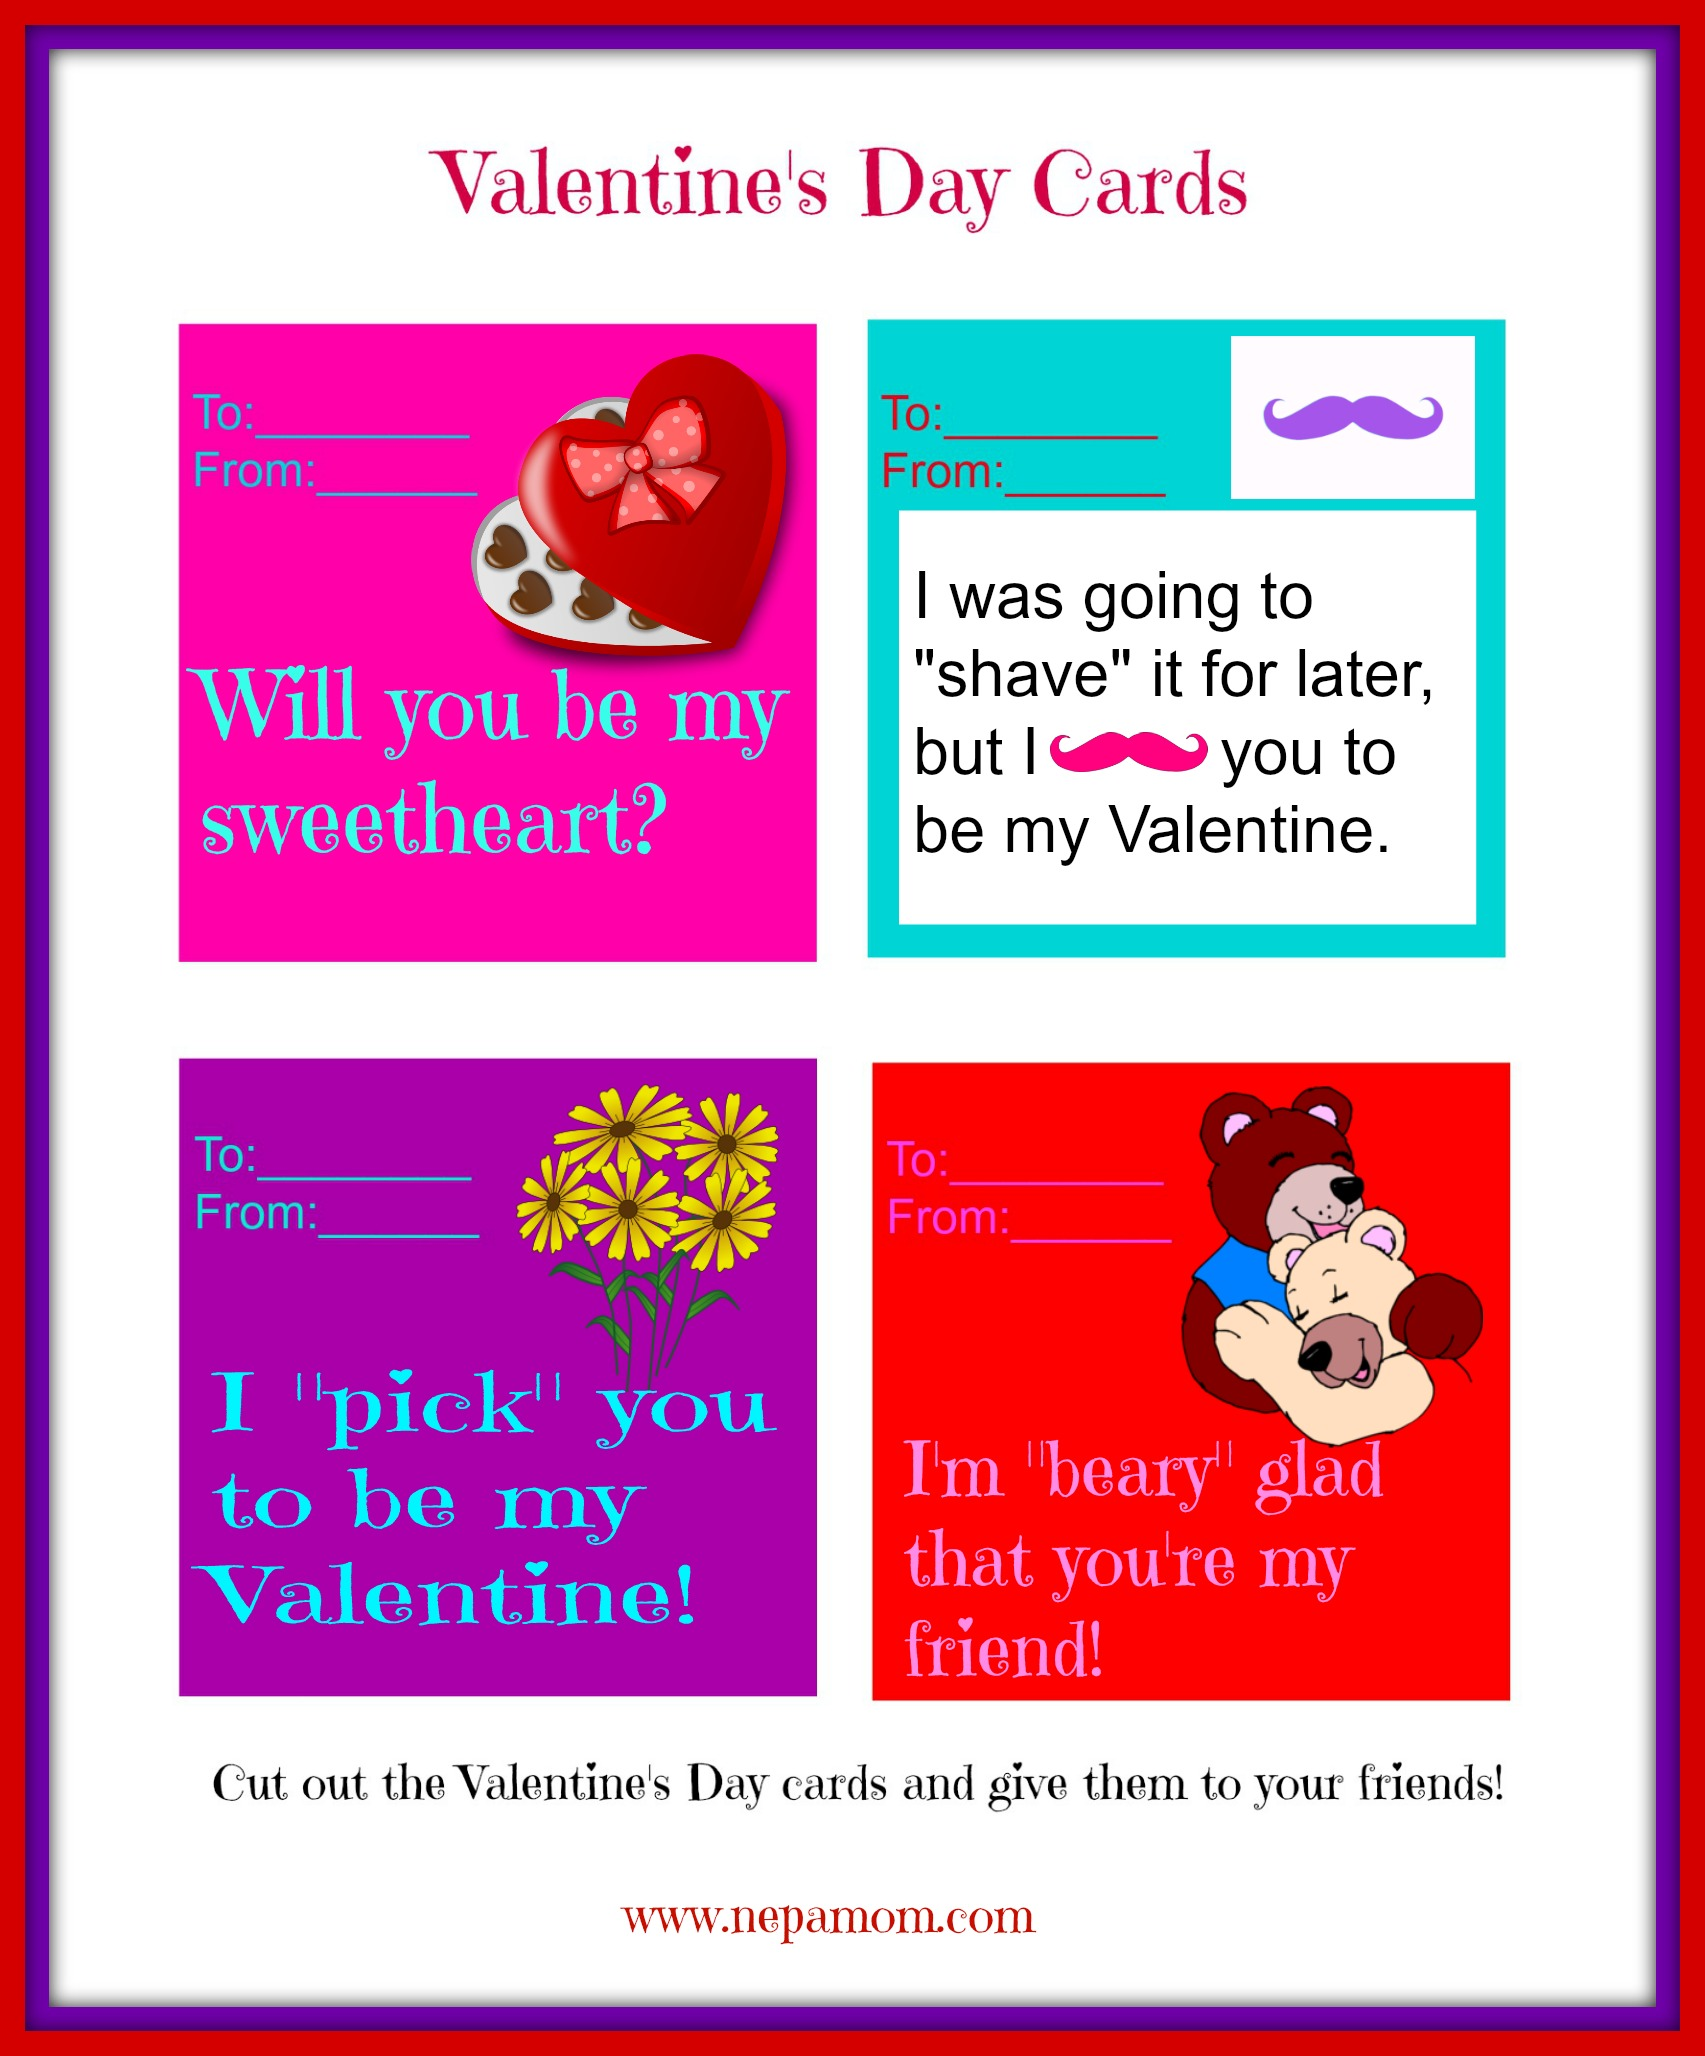 Printable Valentines Day Cards NEPA Mom – Valentines Card Print out